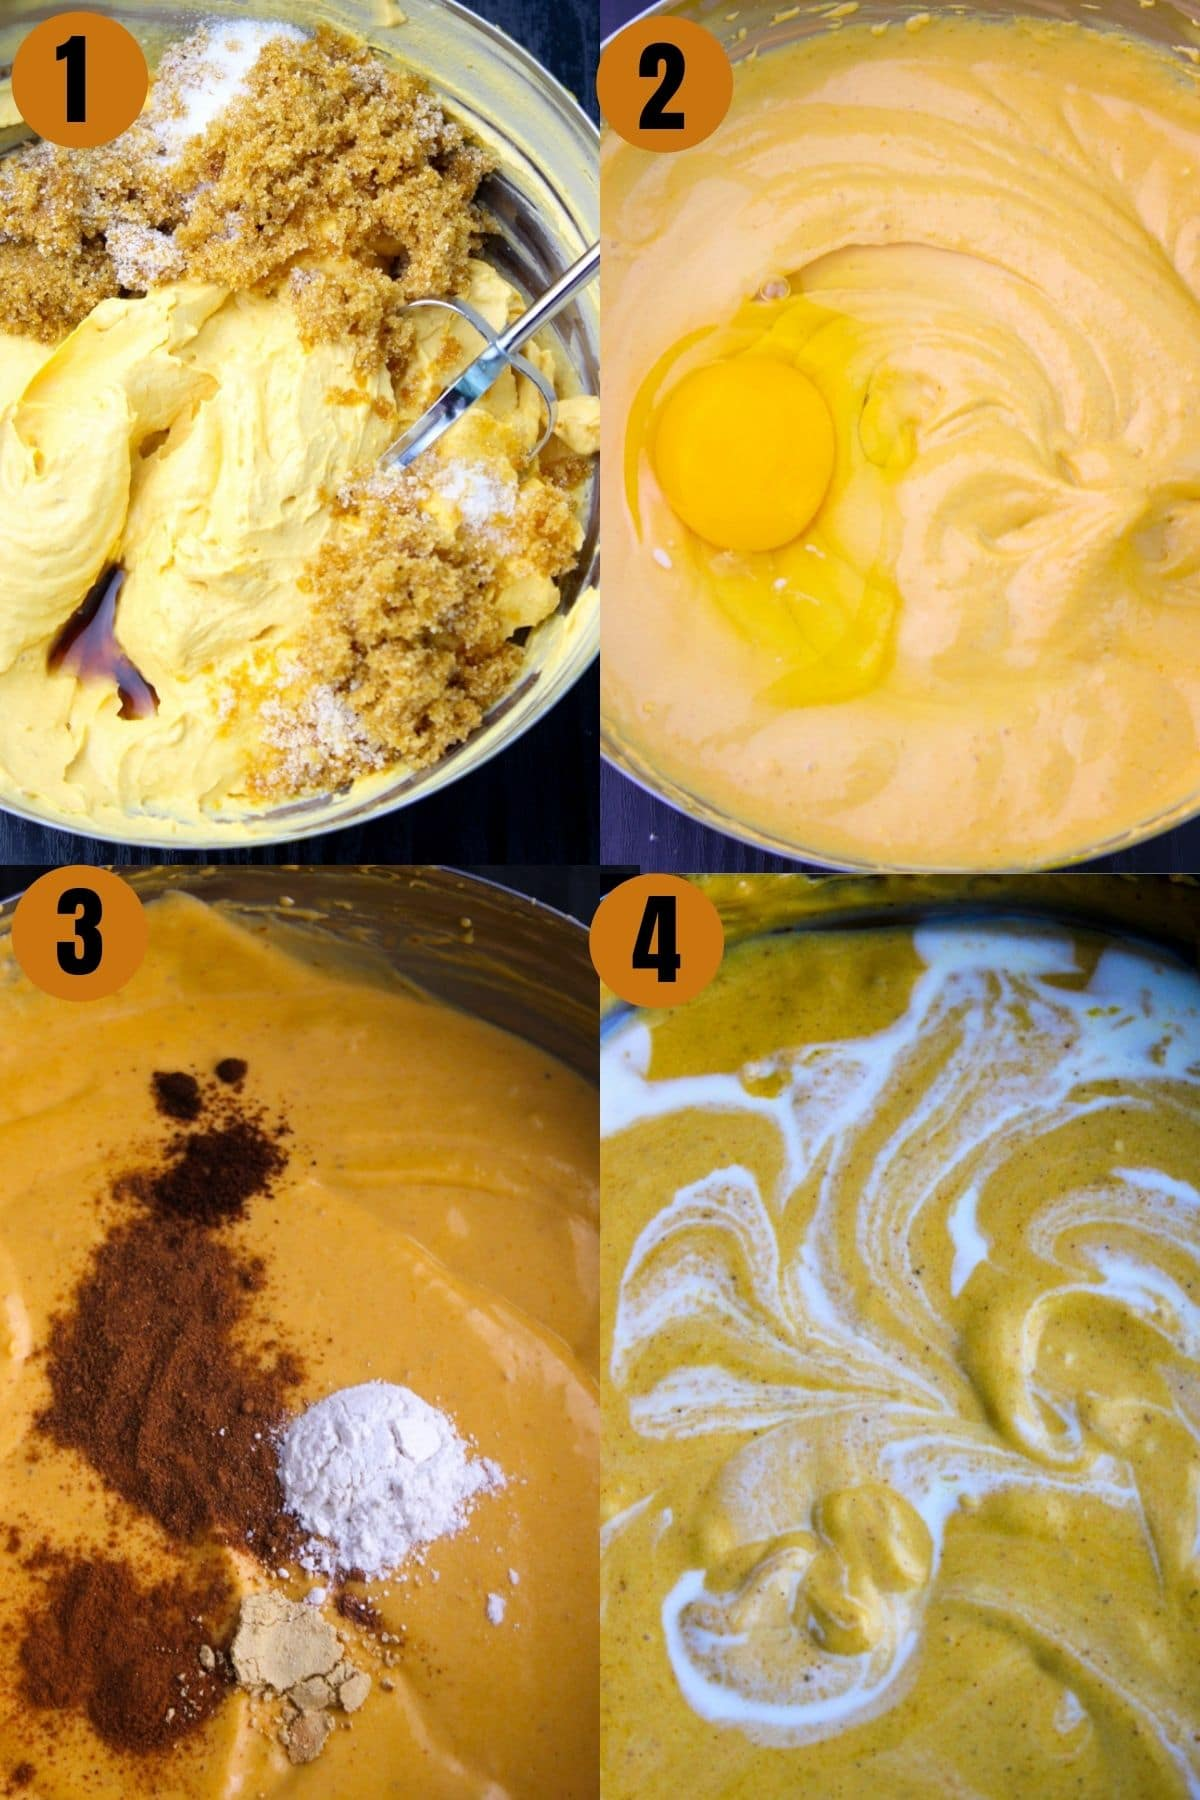 Step by step process of how to make pumpkin pie bars using a hand beater.